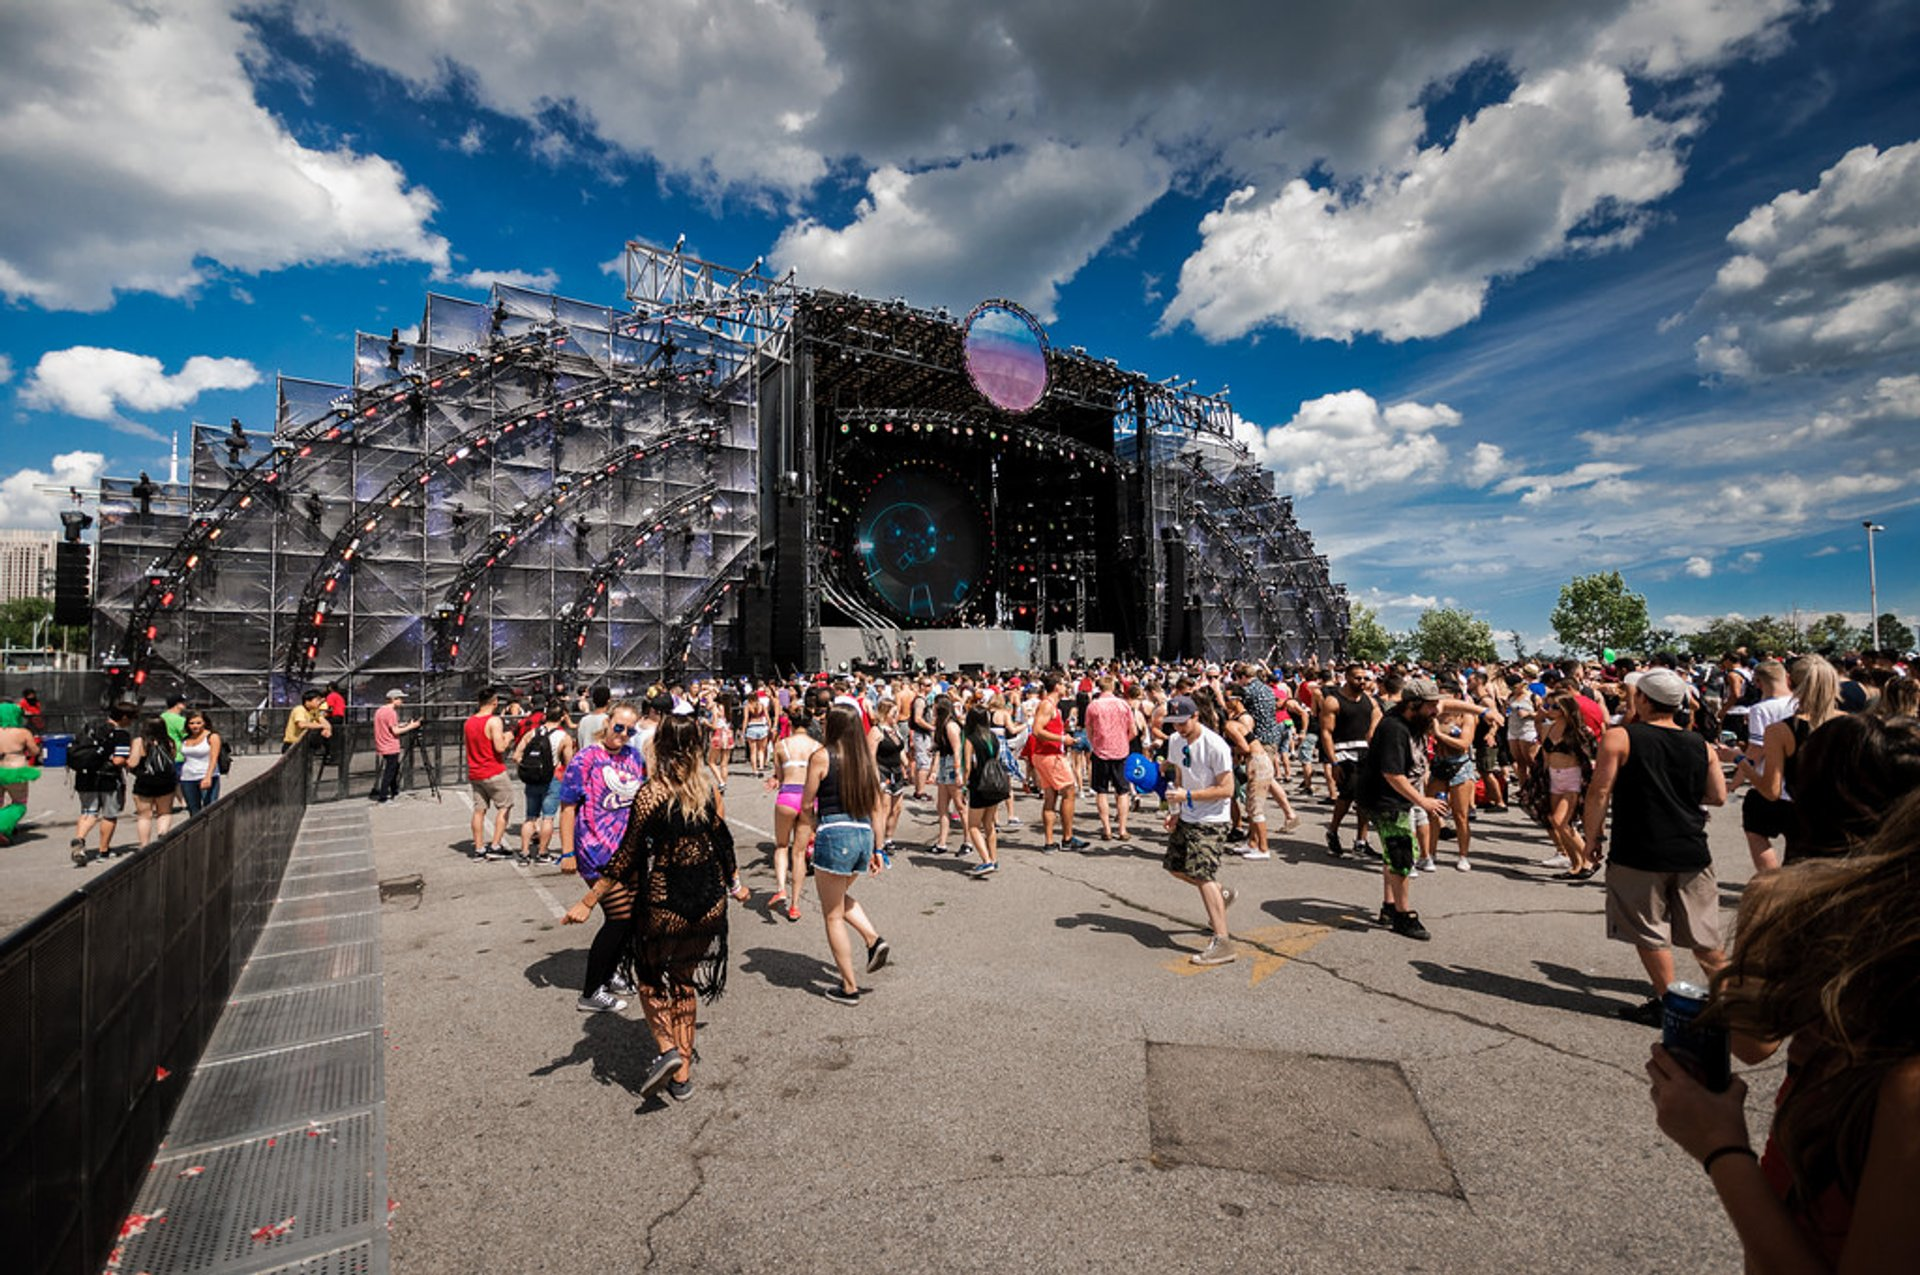 Dreams Festival in Toronto - Best Season 2020